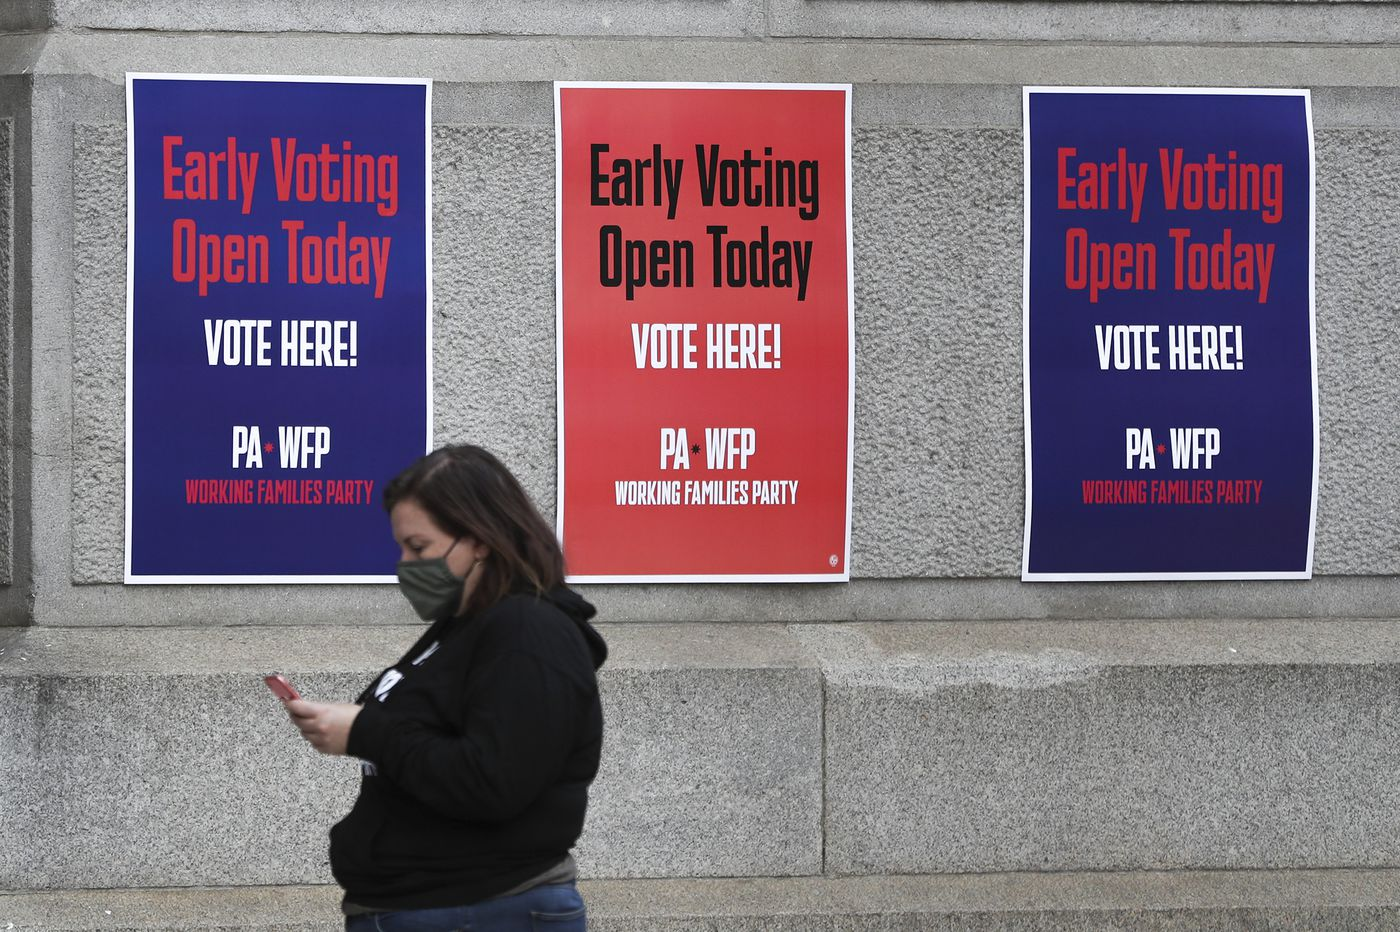 Harvard public health dean: Voting is crucial for the physical health of our communities | Expert Opinion